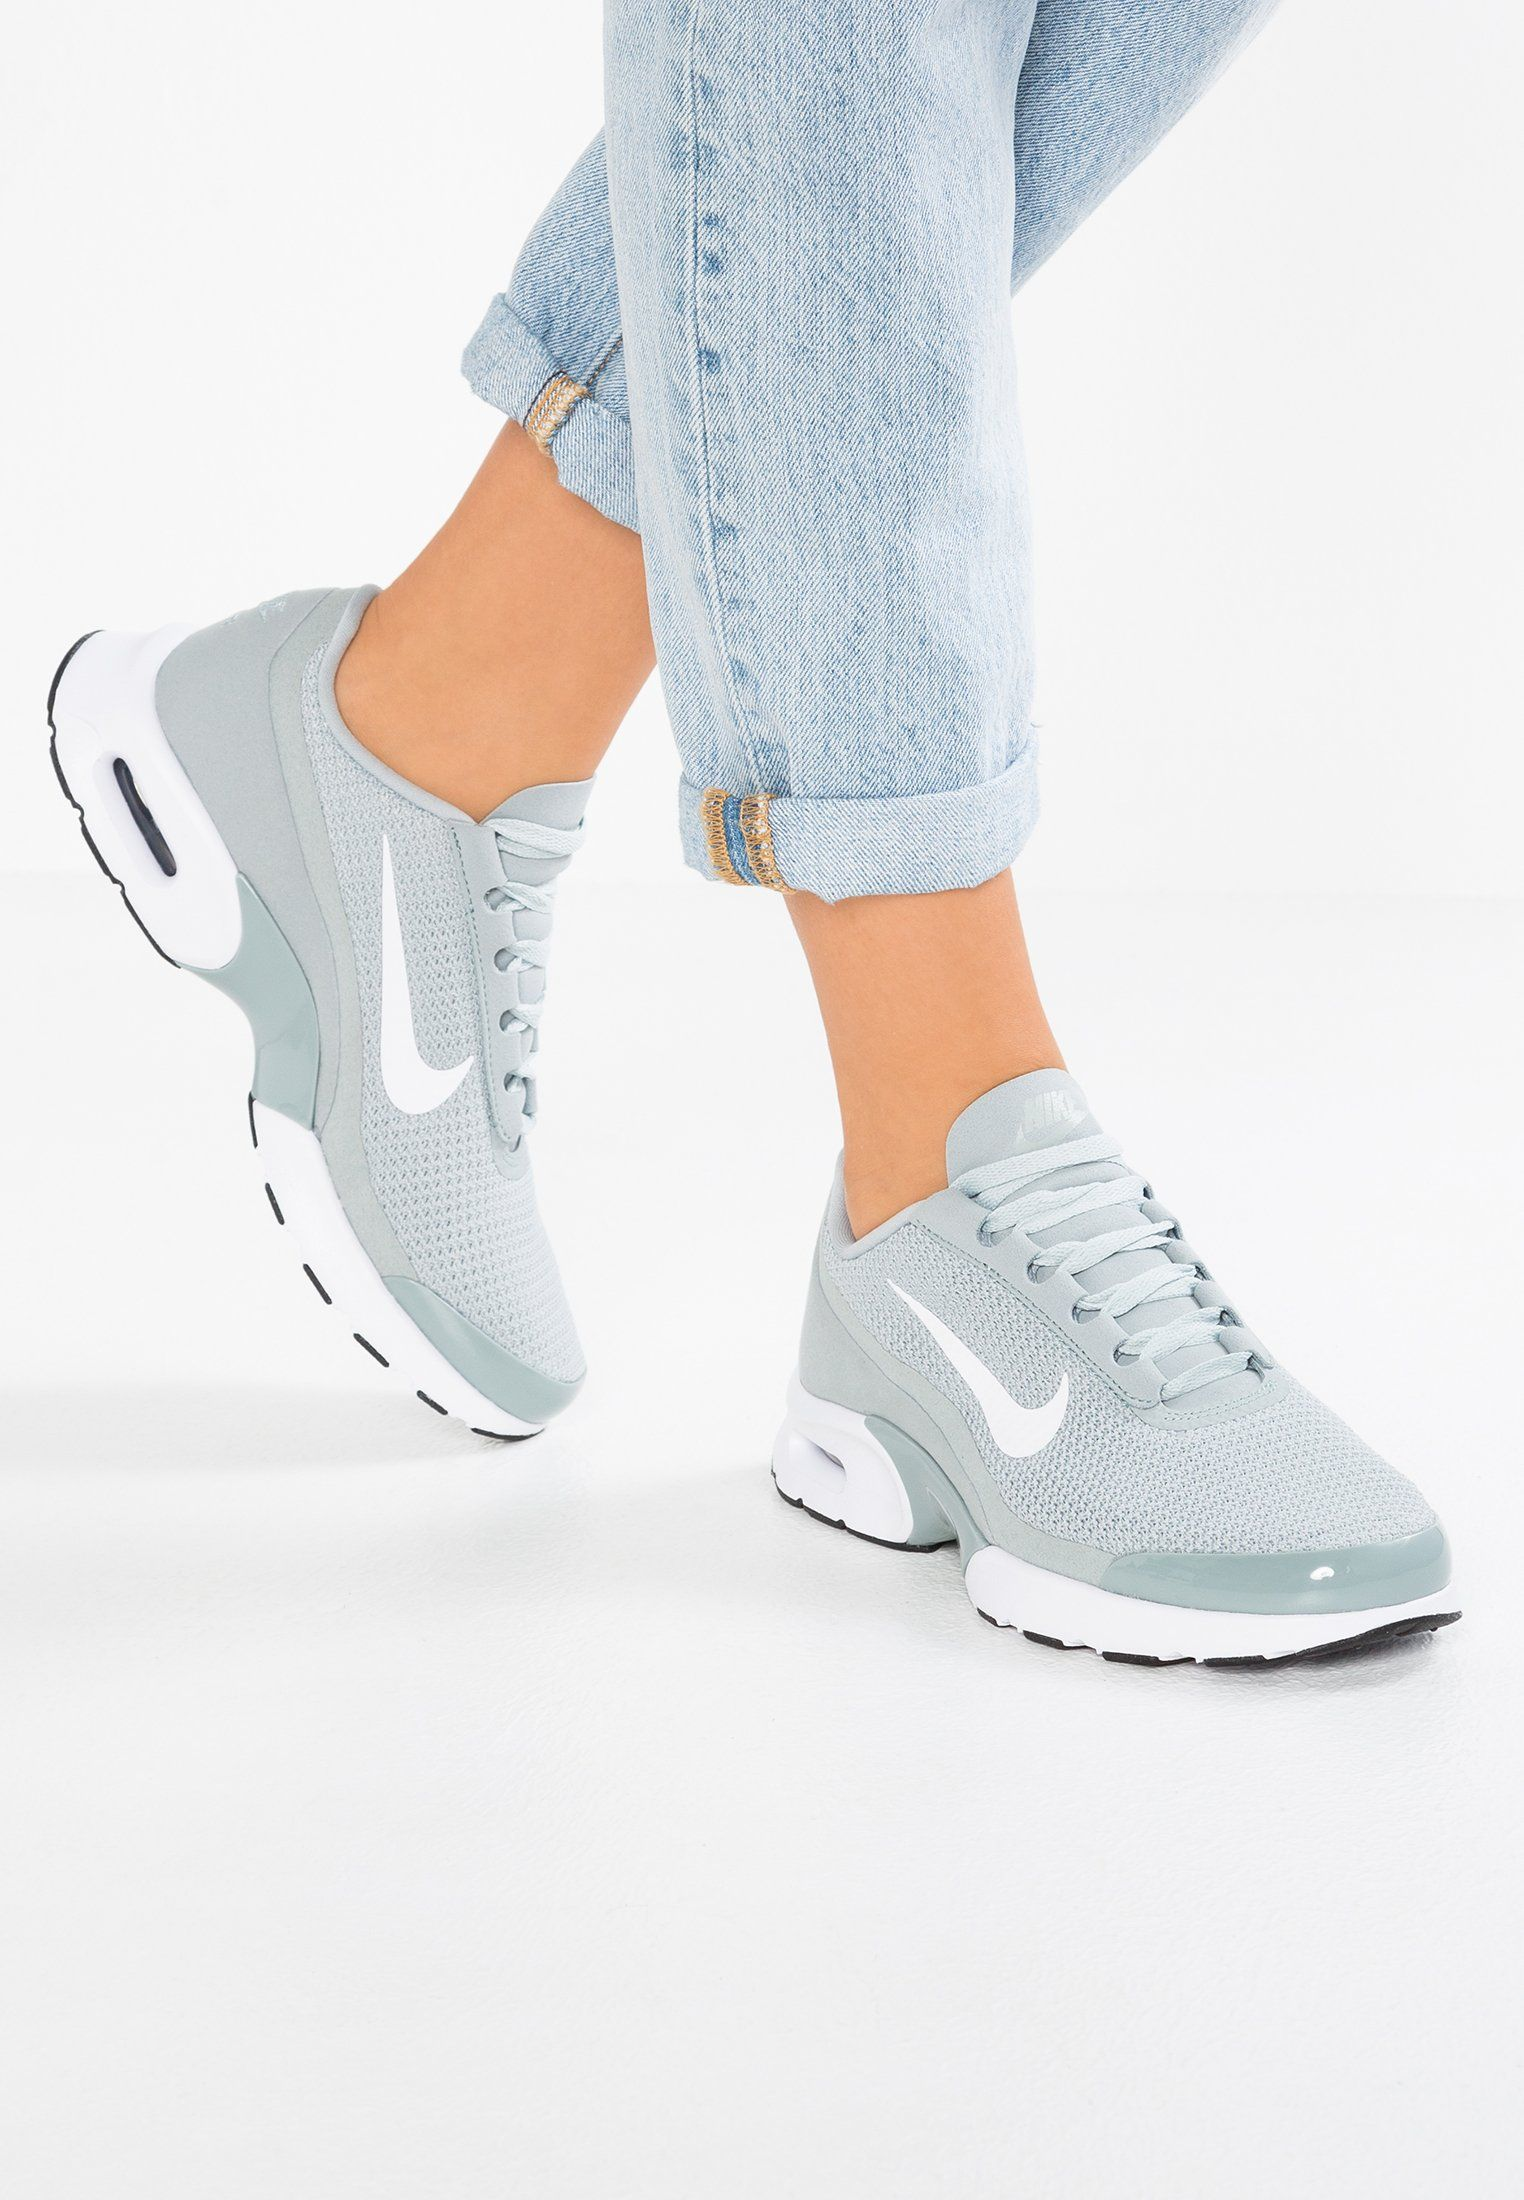 Schoenen Nike Sportswear AIR MAX JEWELL - Sneakers laag - light  pumice white black blauwgrijs  € 109 ed9bb0120d6a